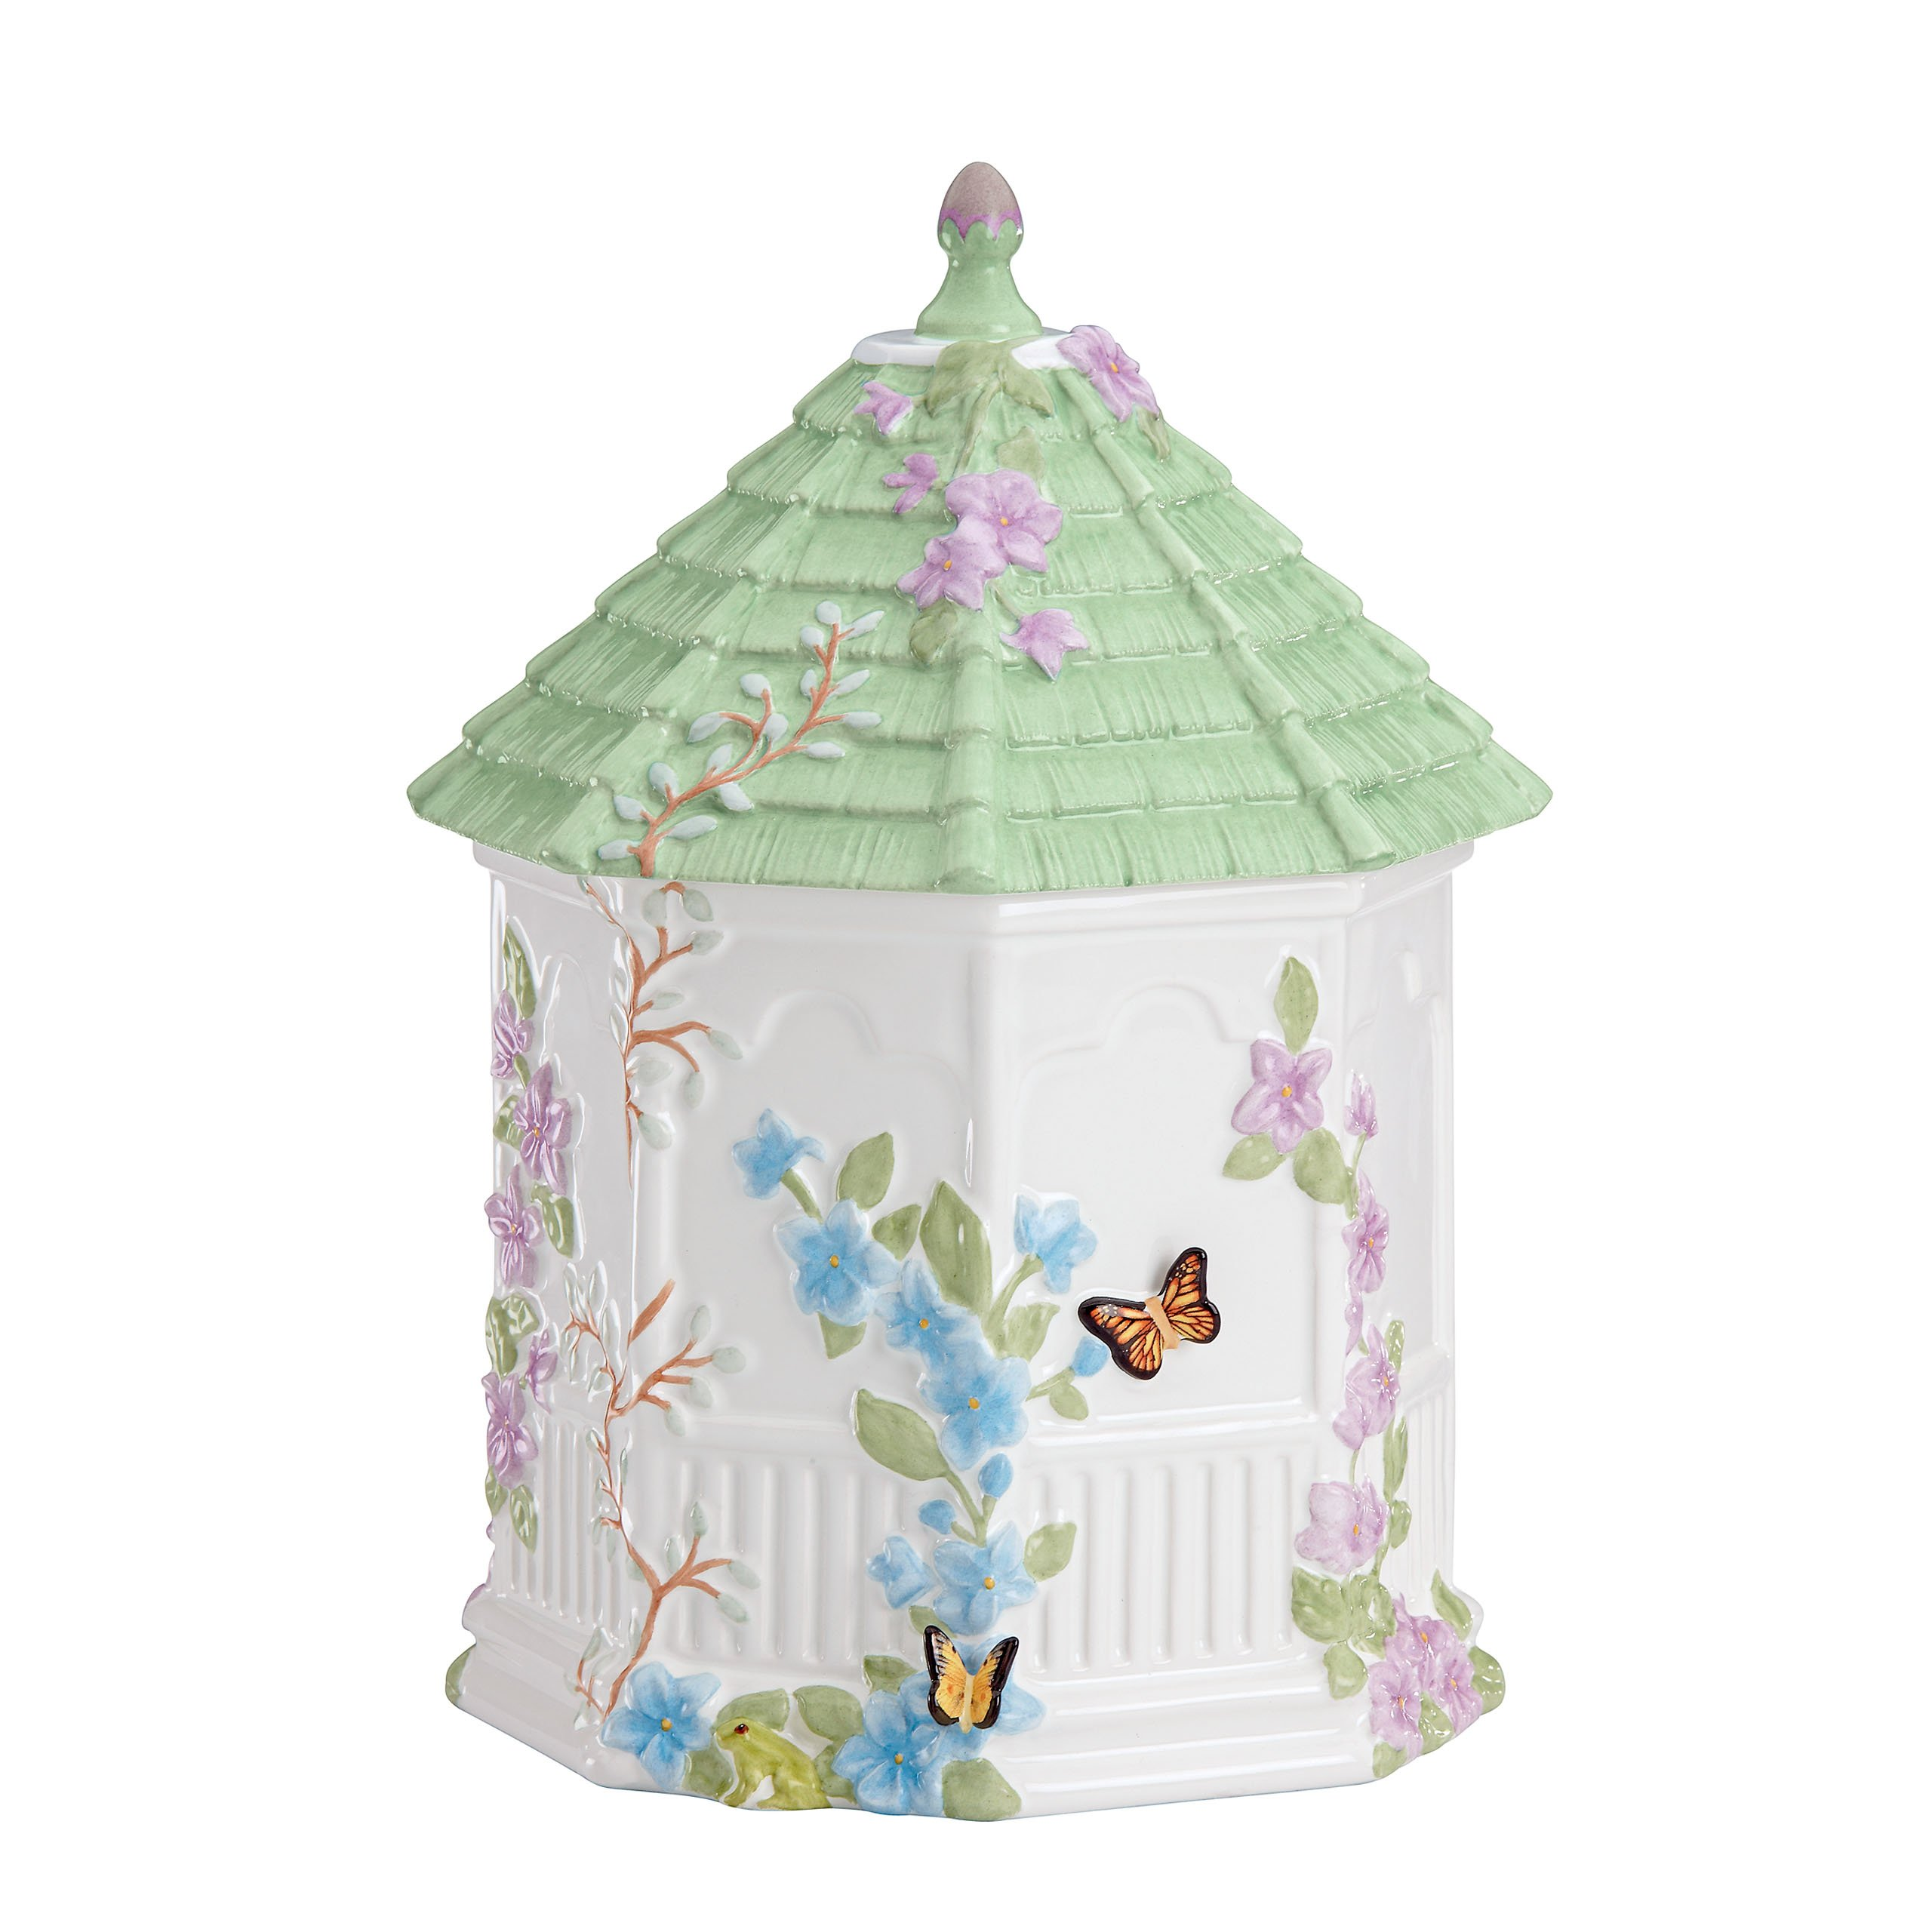 Lenox Butterfly Meadow Figural Gazebo Cookie Jar, 10-Inch